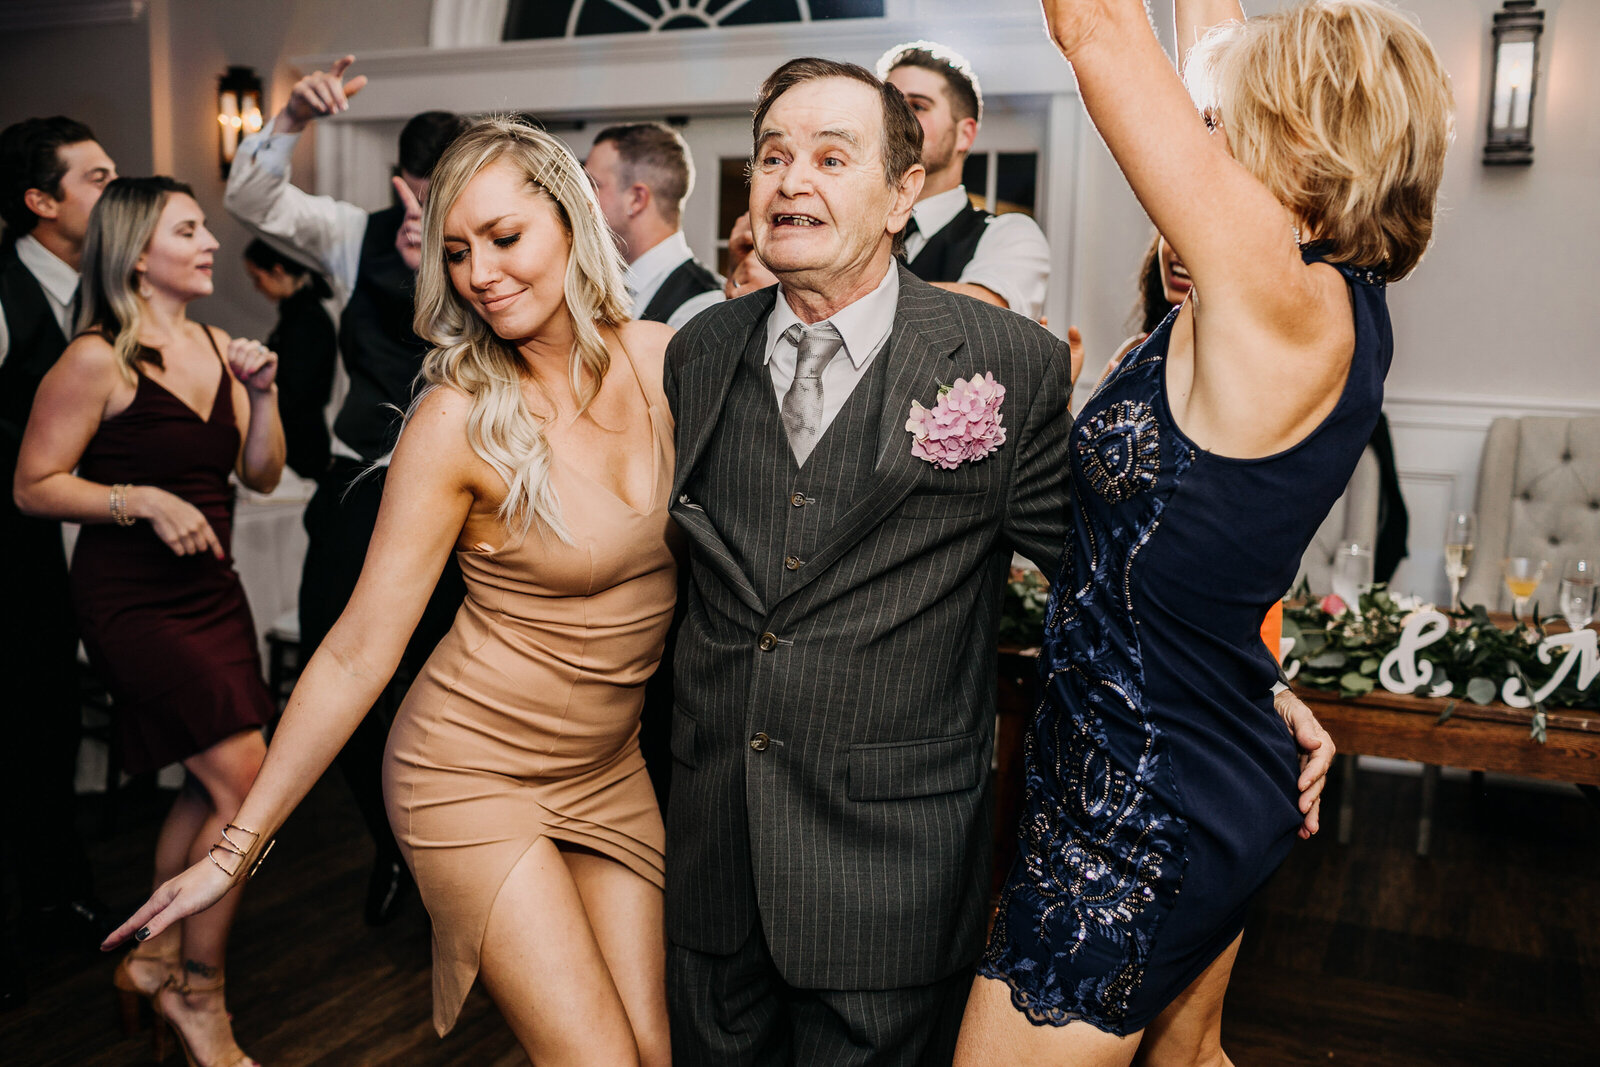 grandpa dancing wedding